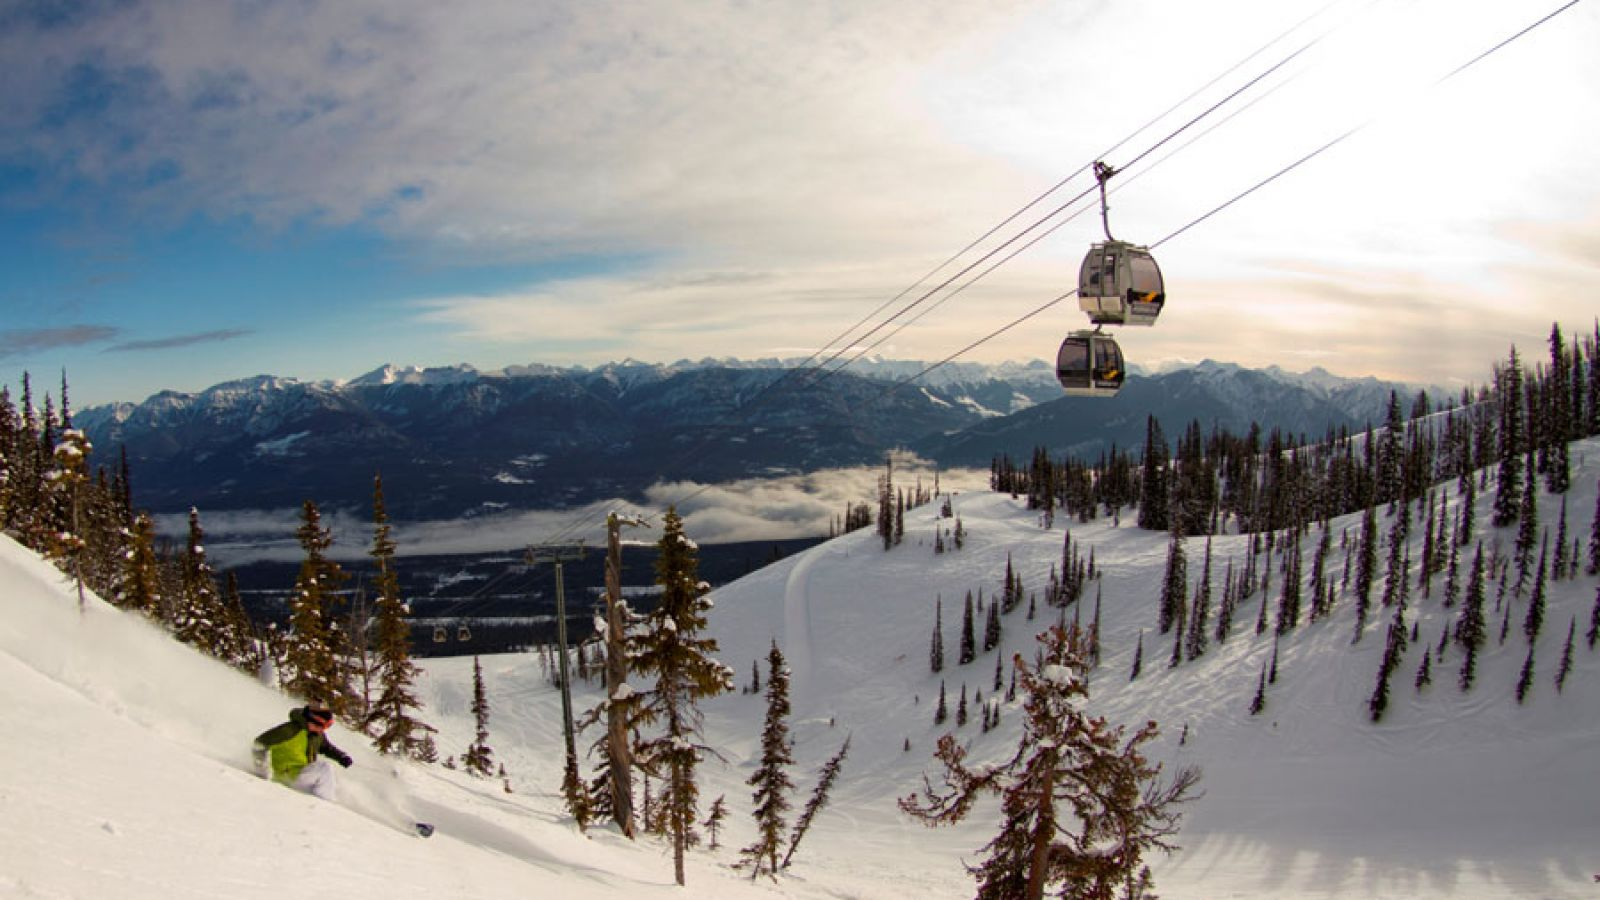 Winter at Kicking Horse Mountain Resort.